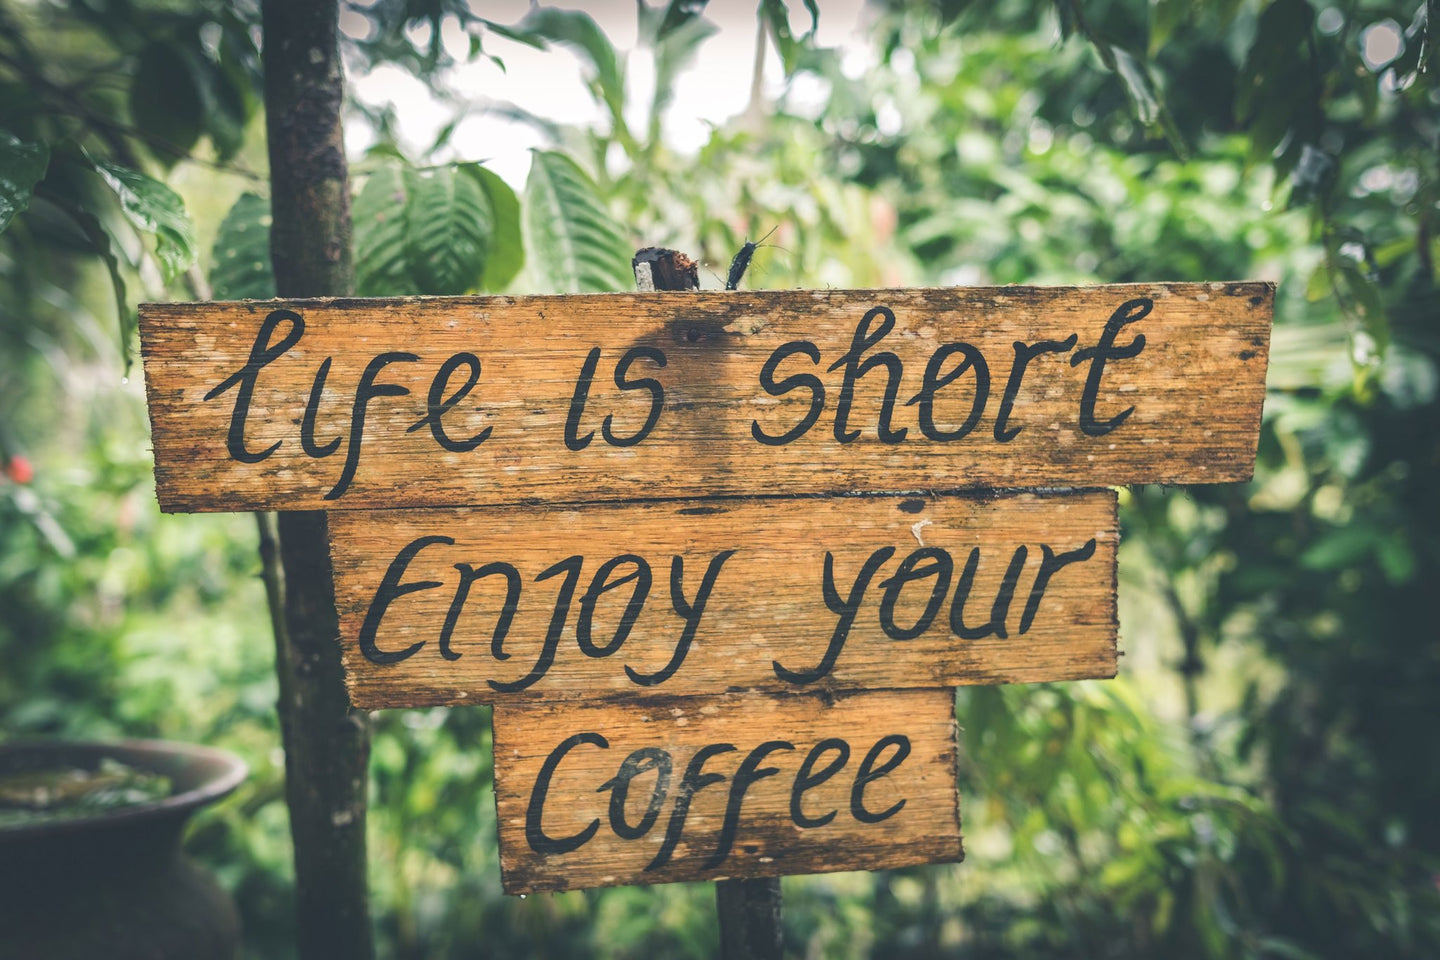 Shallow photography of life is short enjoy your coffee - W-Photographie